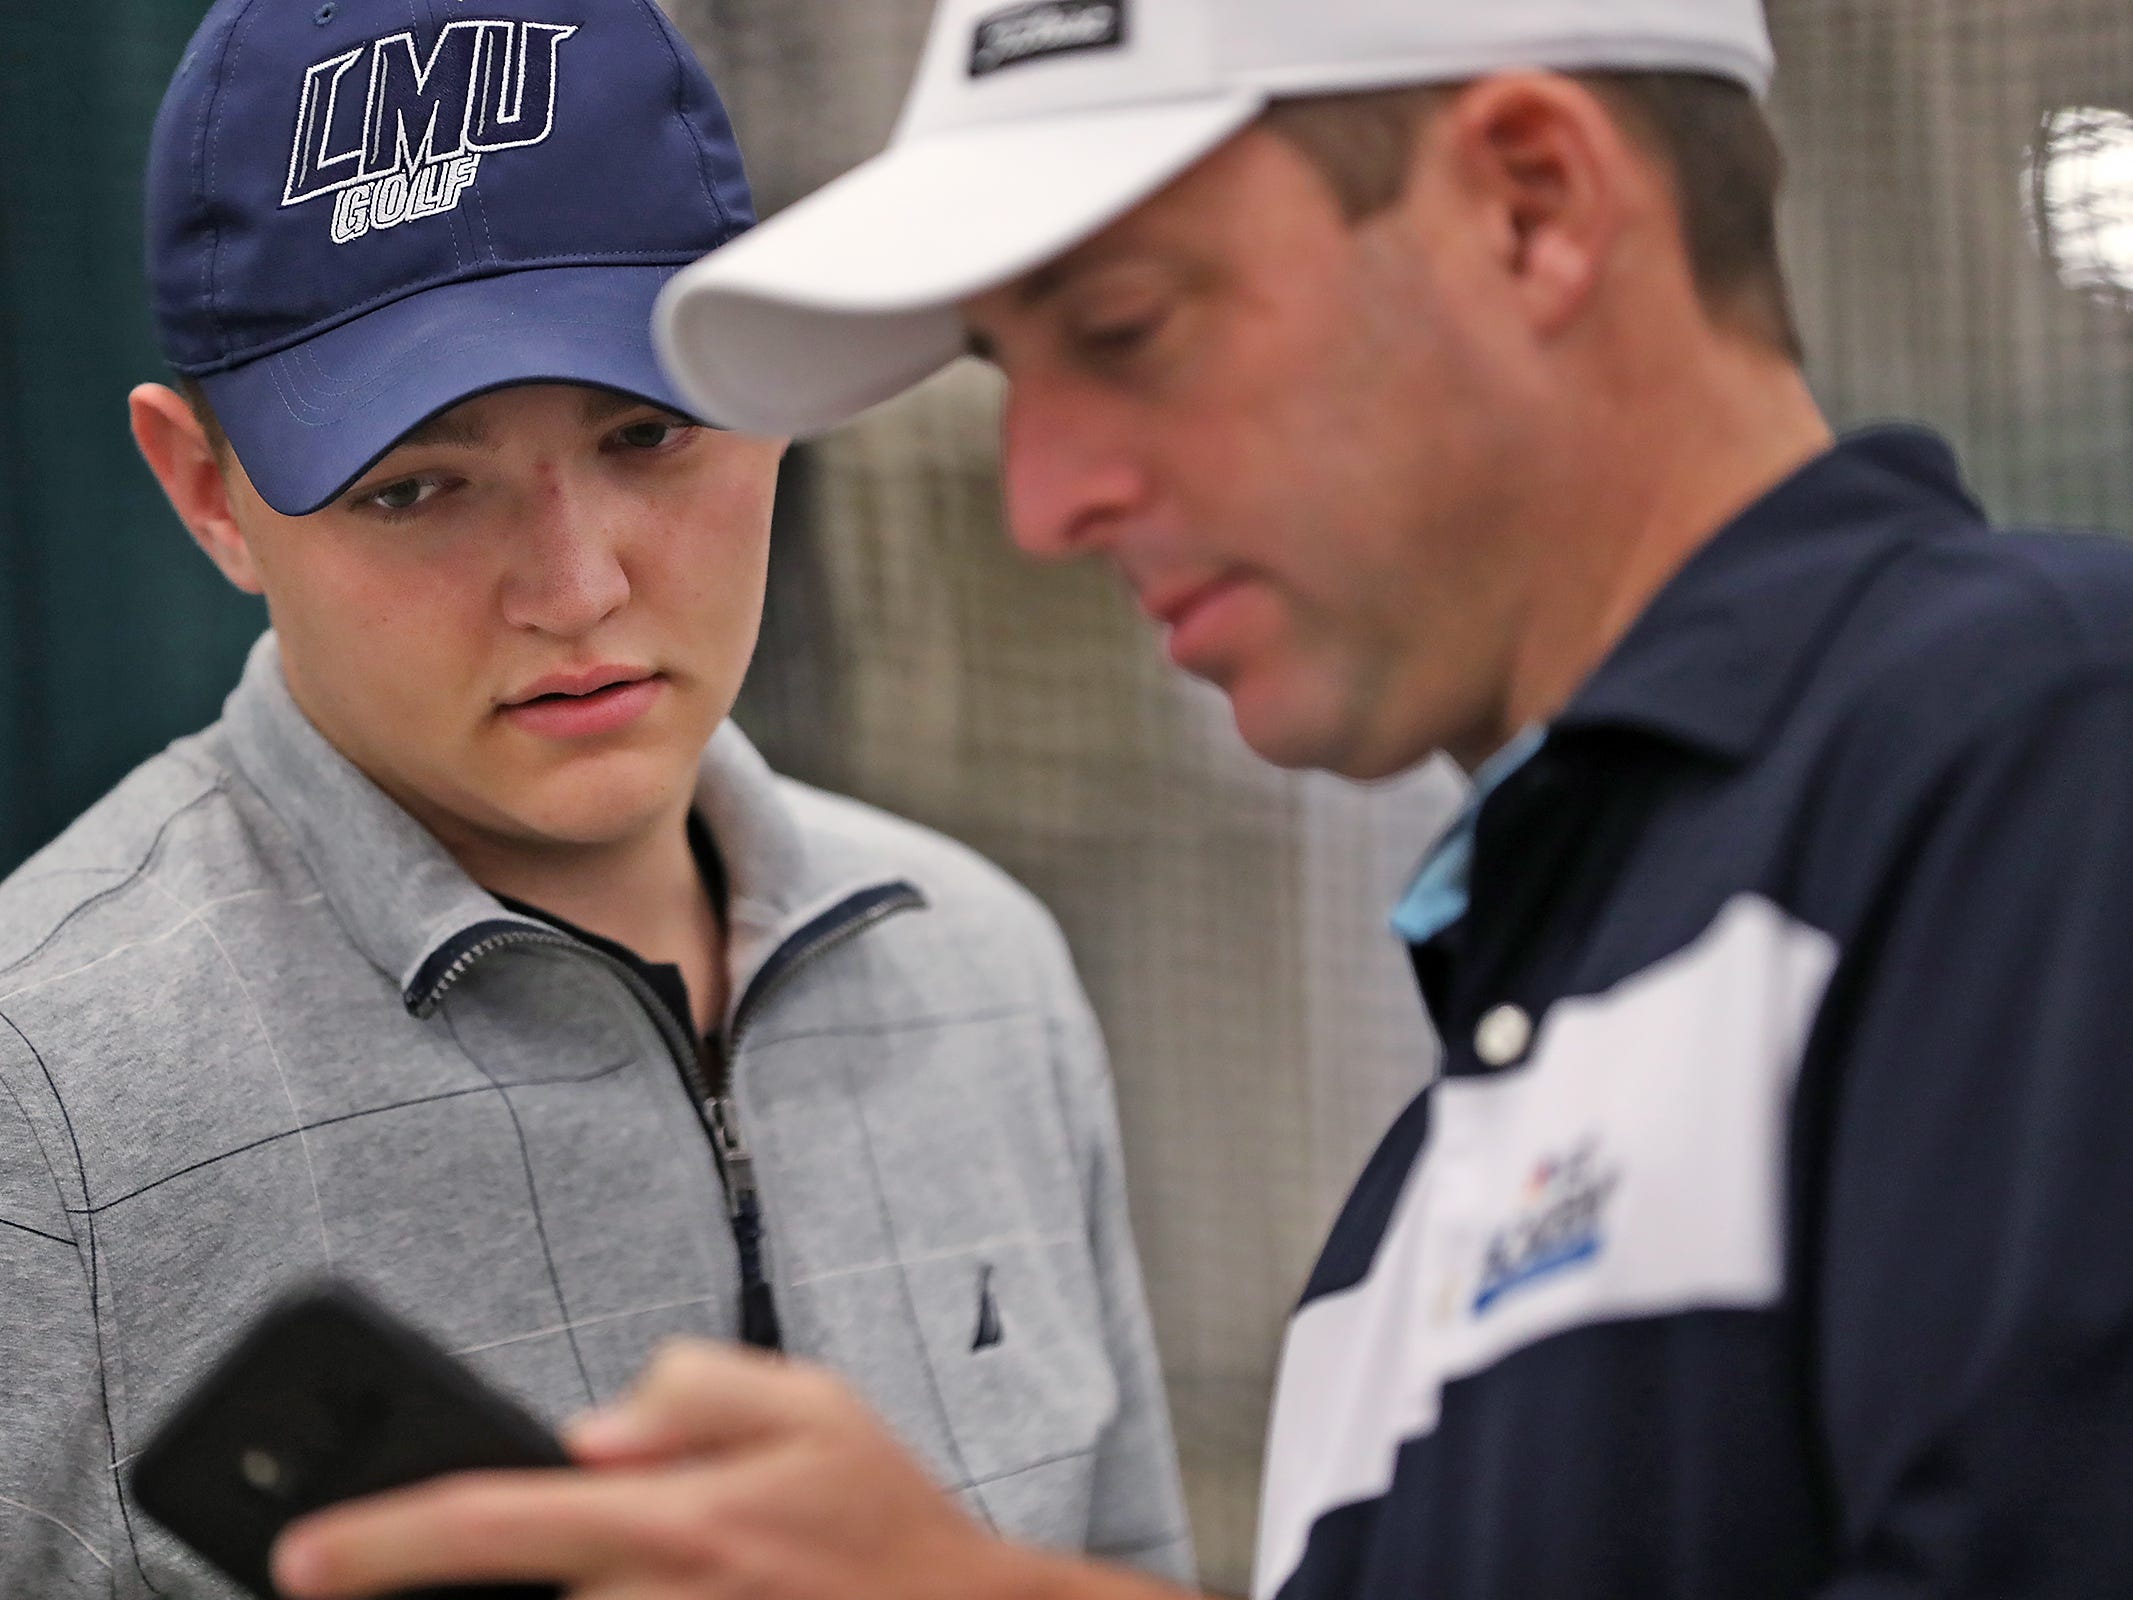 Brett Widner, left, gets tips about his golf swing from Colby Huffman at the Golf Channel with Colby Huffman booth during the Indy Golf Expo at the Indiana State Fairgrounds, Sunday, Jan. 20, 2019.